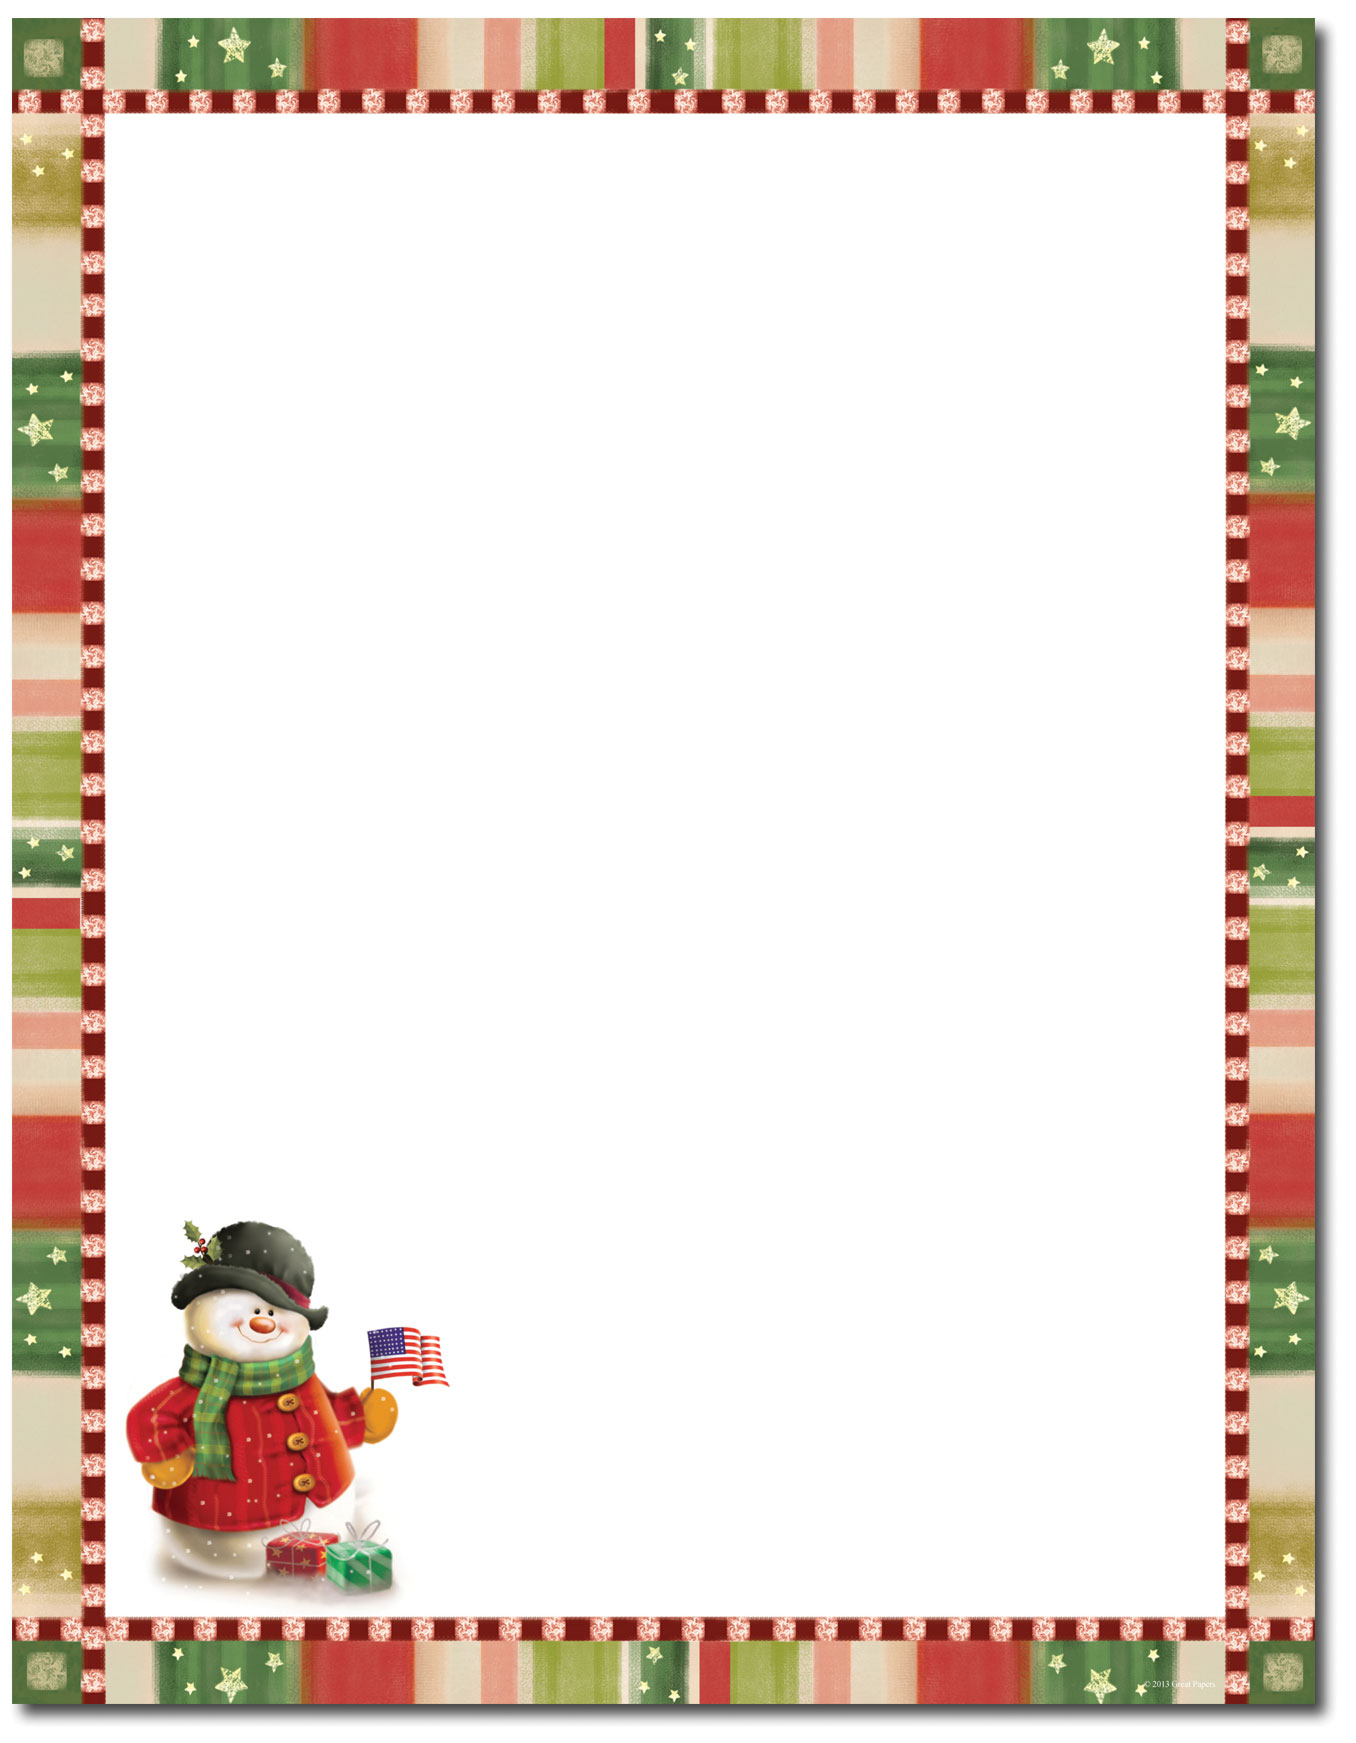 Free Christmas Stationary Cliparts, Download Free Clip Art, Free.